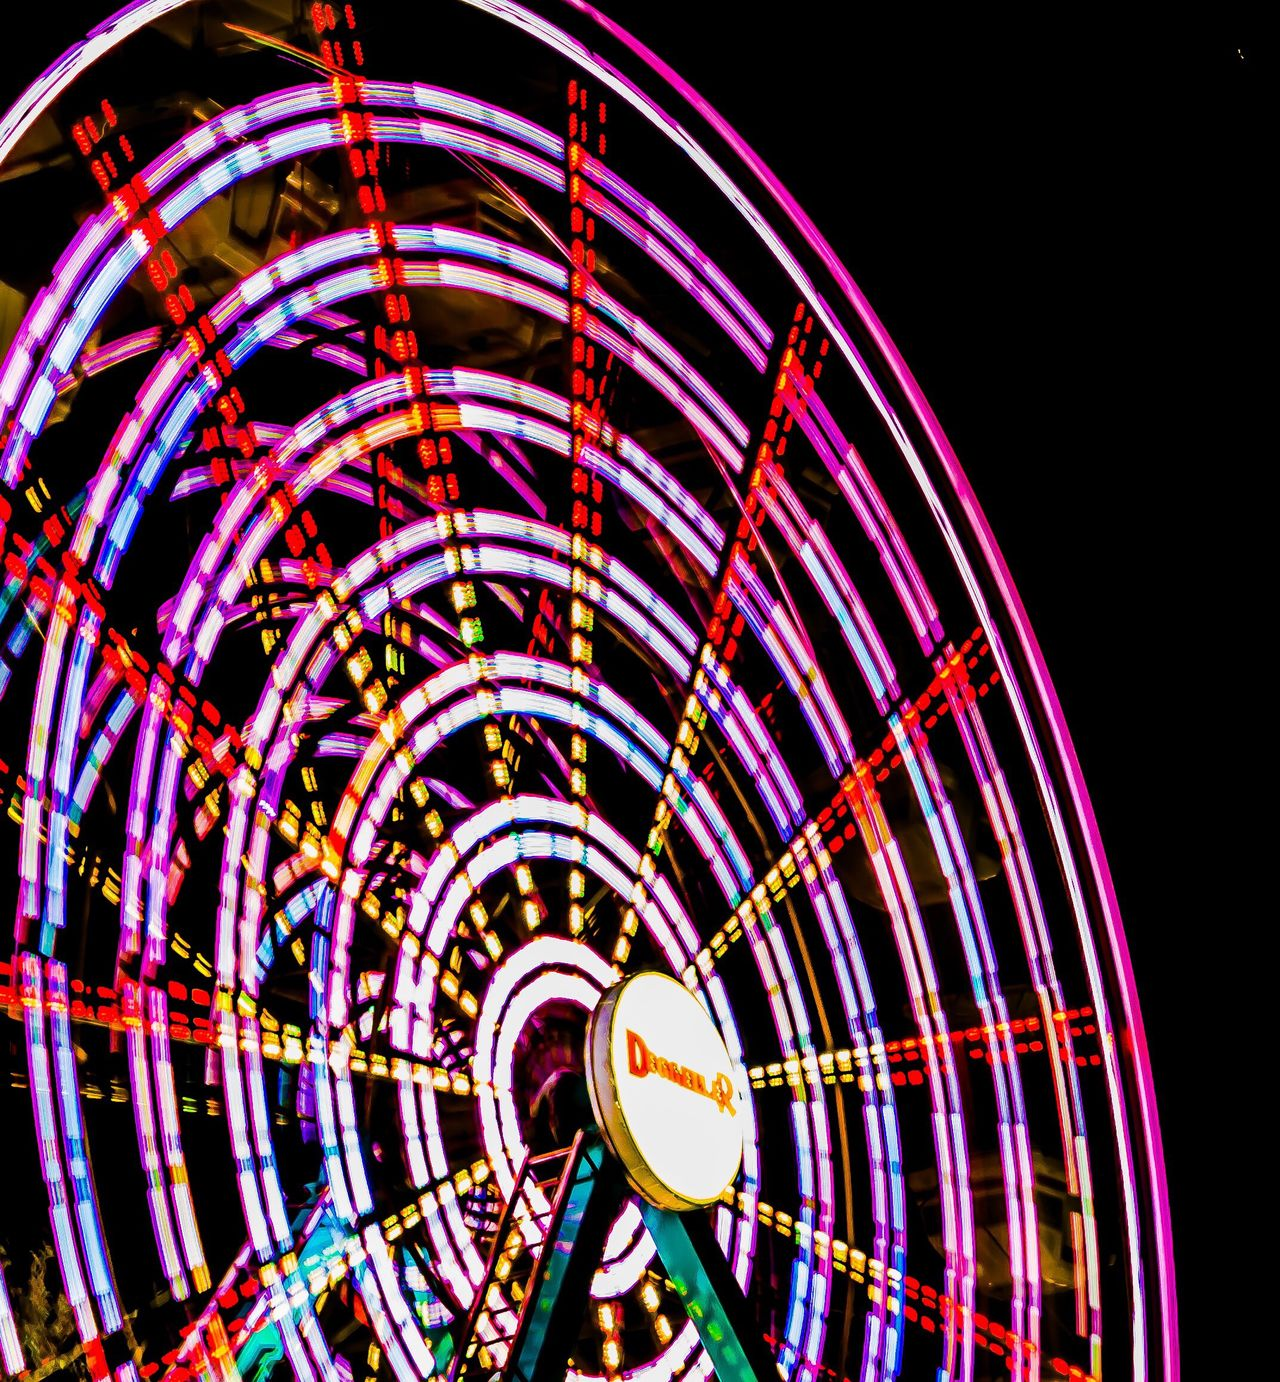 Illuminated Night Low Angle View Amusement Park No People Clear Sky Amusement Park Ride Motion Outdoors Architecture Abstract Photography EyeEm Best Shots EyeEm Gallery Light Effect Blurred Motion Long Exposure Nightphotography Spinning Abstract Speed Big Wheel Ferris Wheel Multi Colored Eyeemphotography EyeEm